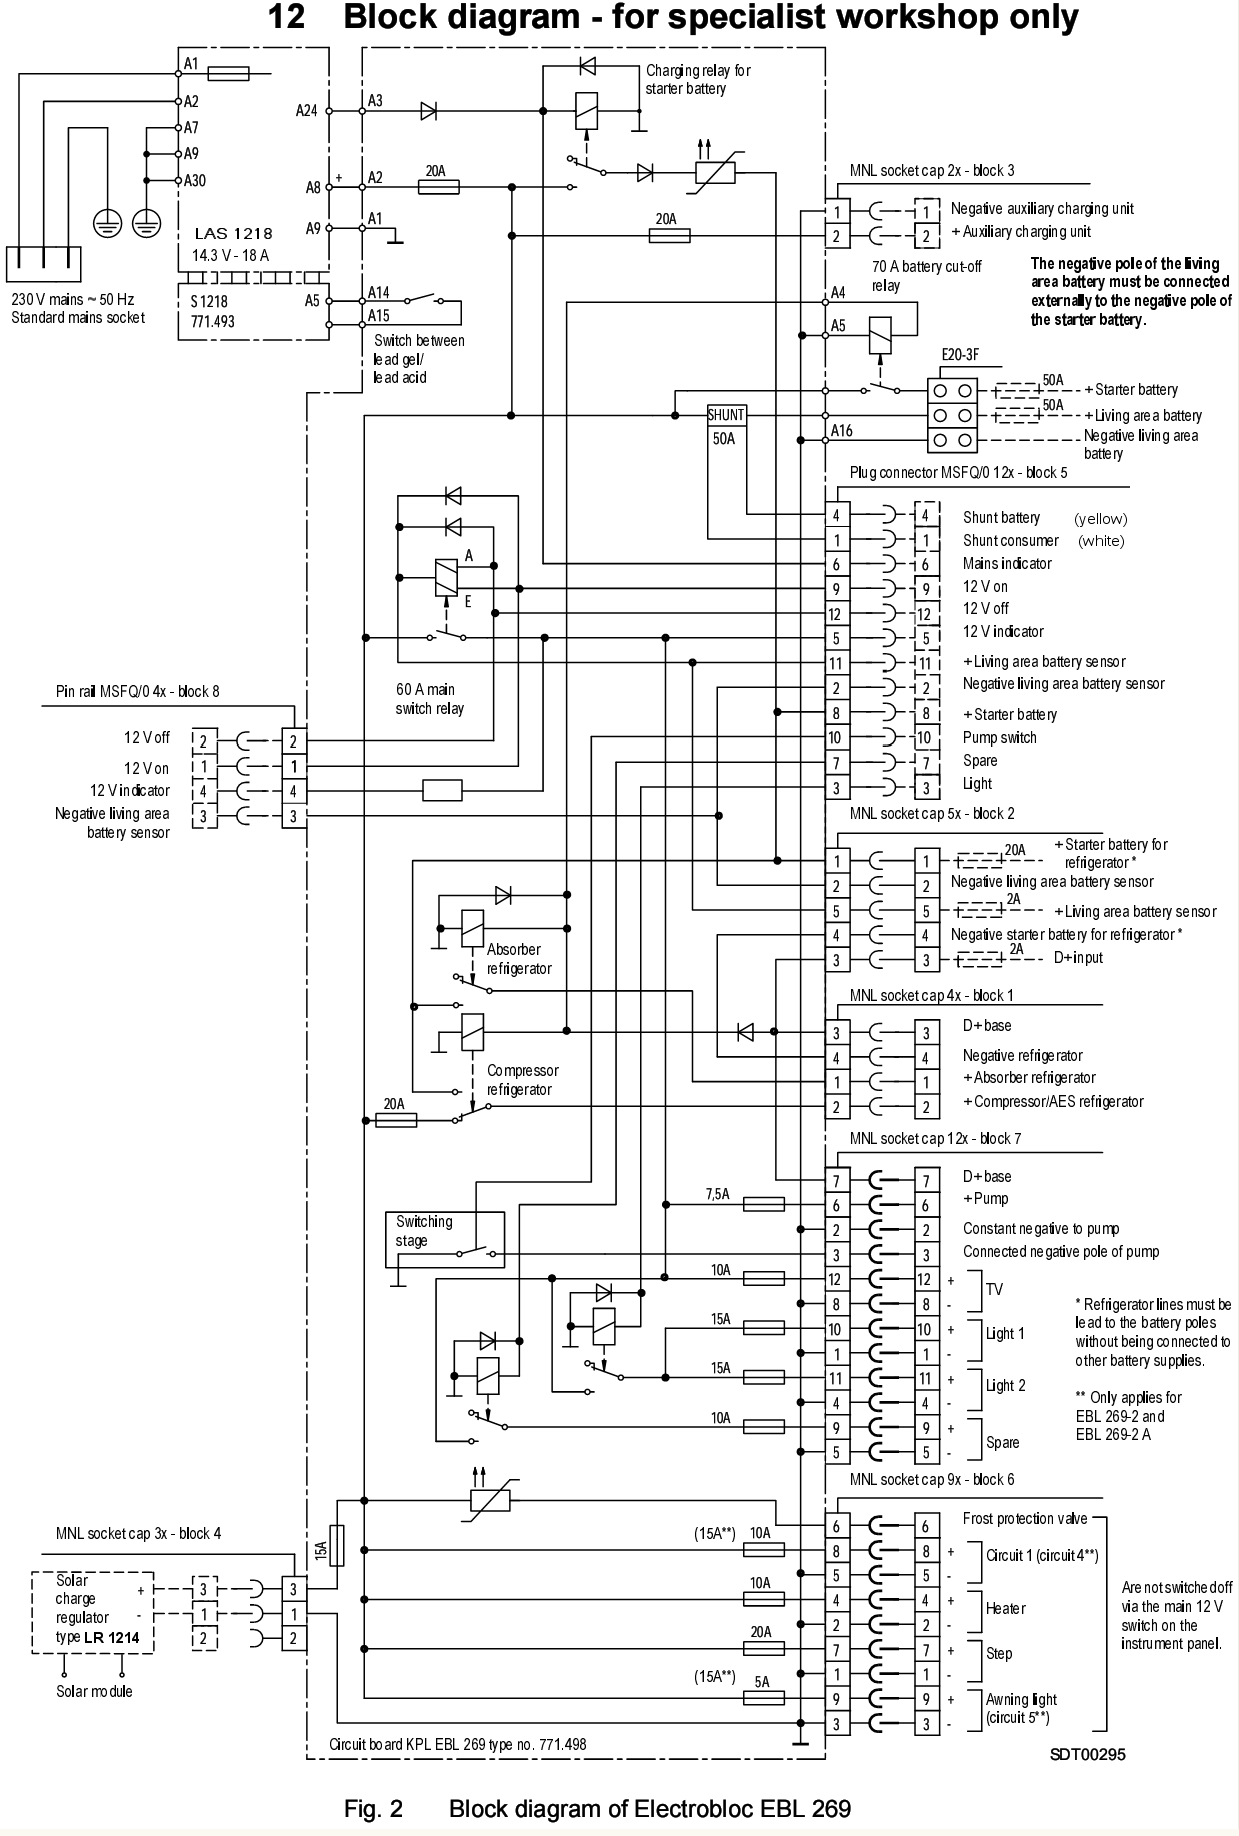 Fiat Ducato Van Wiring Diagram - Example Electrical Wiring Diagram on conversion van lights, conversion van paint, conversion van exhaust, conversion van hitches, conversion van fasteners, conversion van doors, conversion van electrical, conversion van painting, conversion van engine,